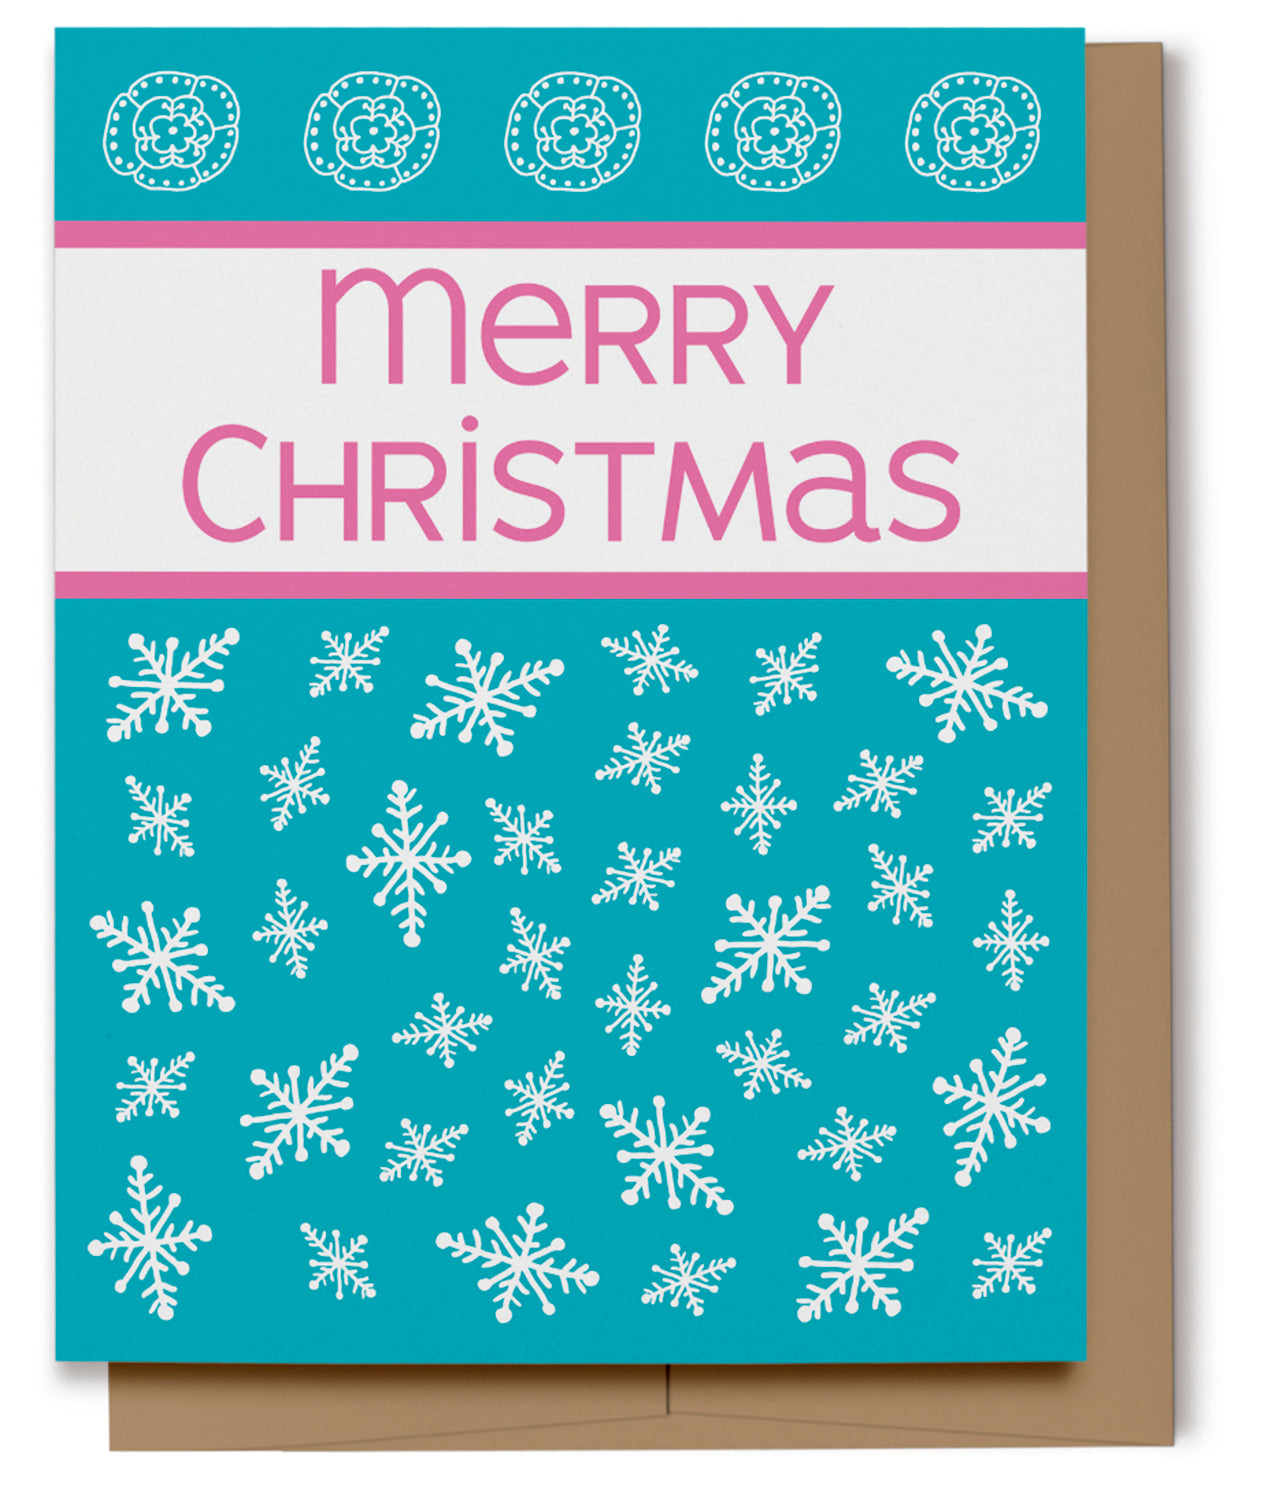 Merry Christmas Card - Blue (100% Recycled)